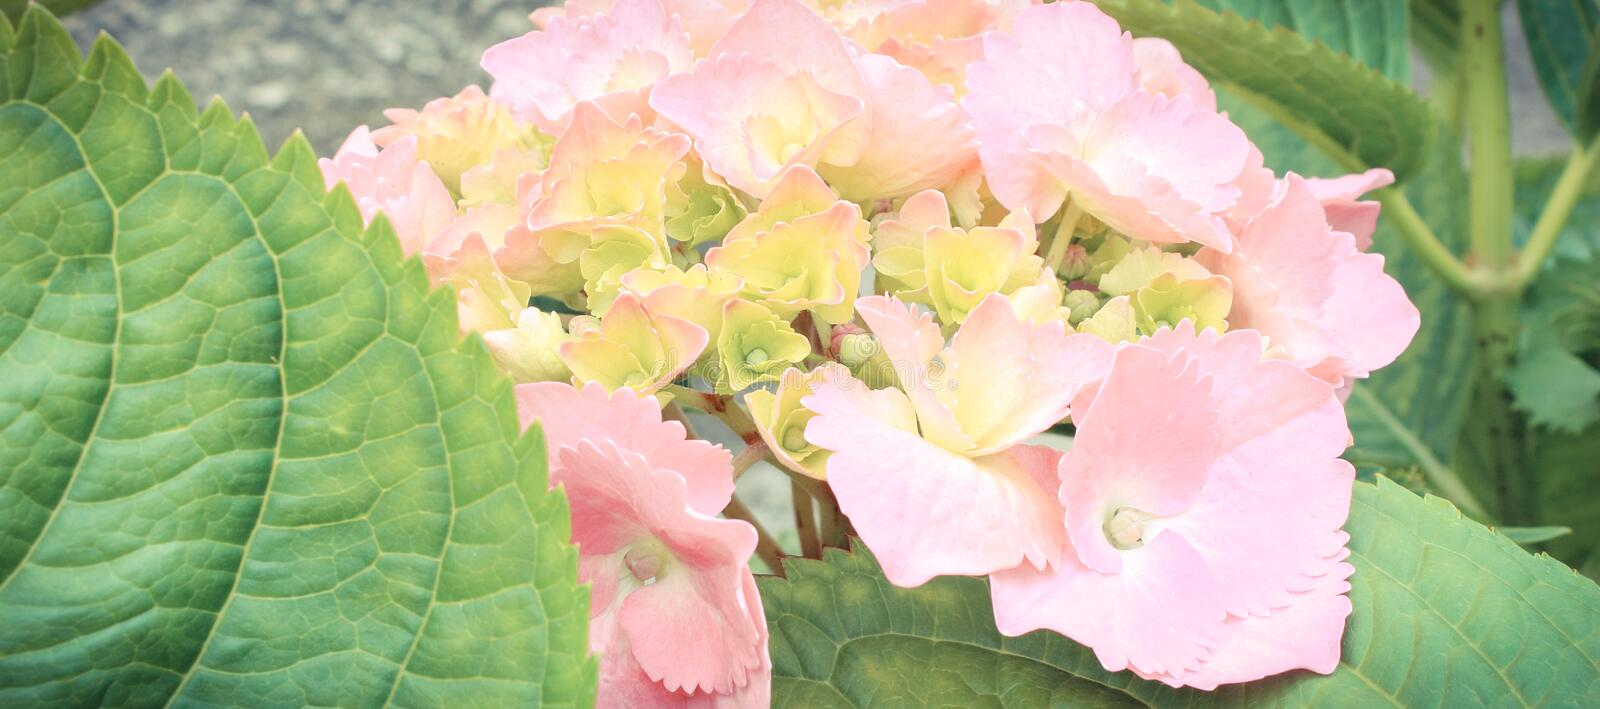 Blooming hydrangea with green leaves in sunny garden. Seasonal flowers concept stock image